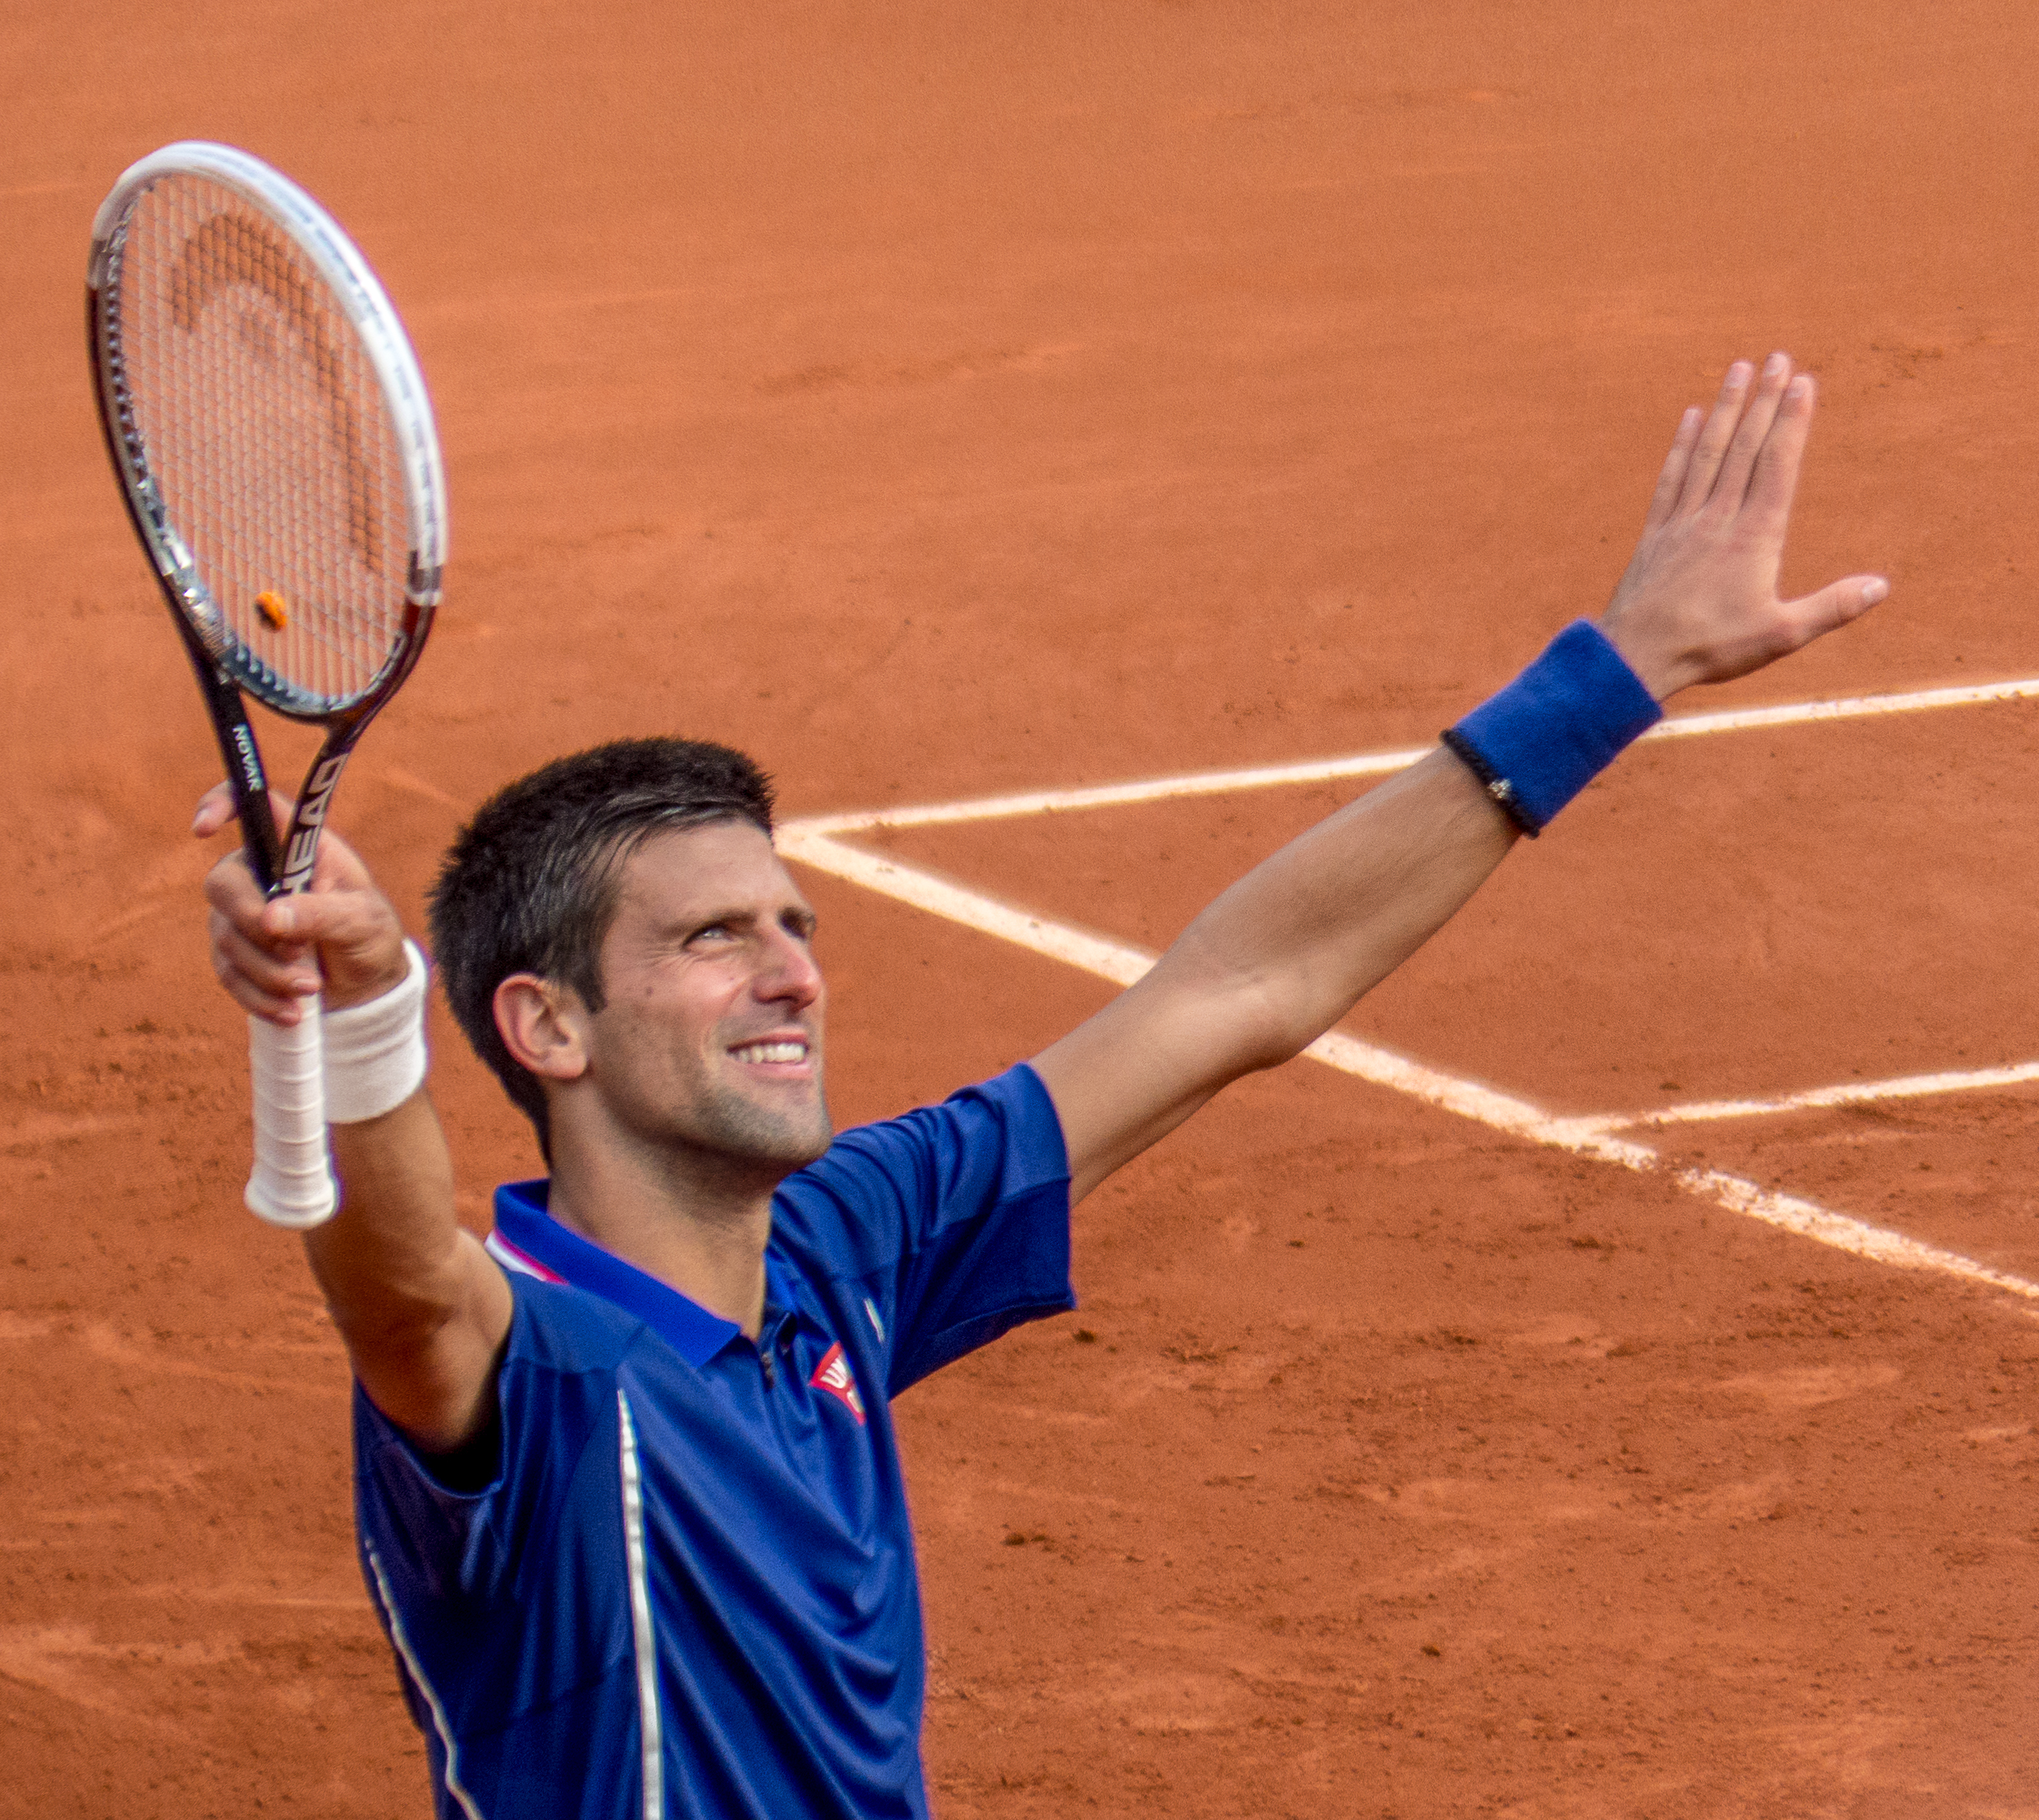 Did Novak Djokovic hurt his ankle again... or was it all just a performance? Image Source: Wikimedia.org